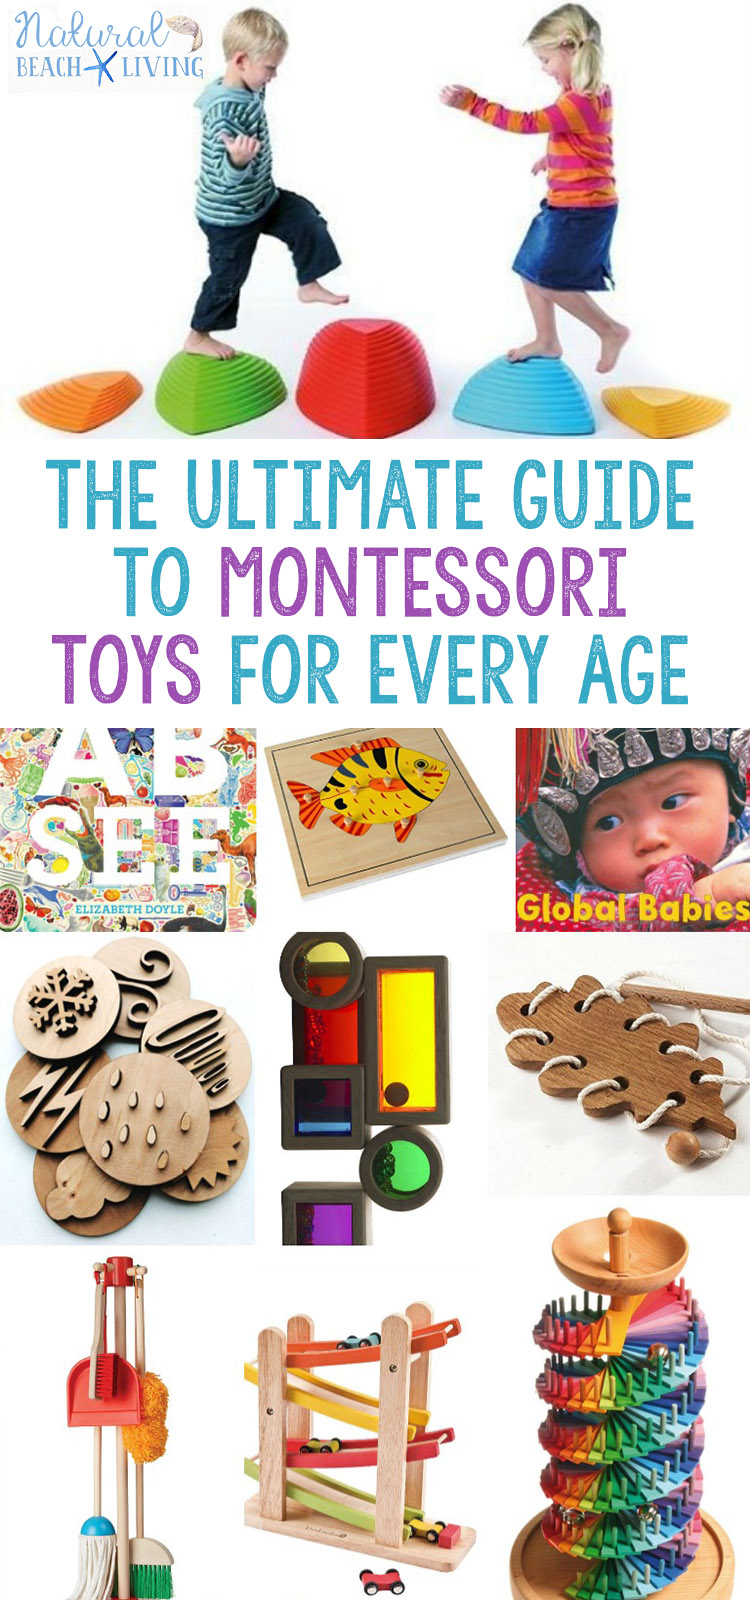 The Best Montessori Toys for Kids - Birth to 6 Years ...